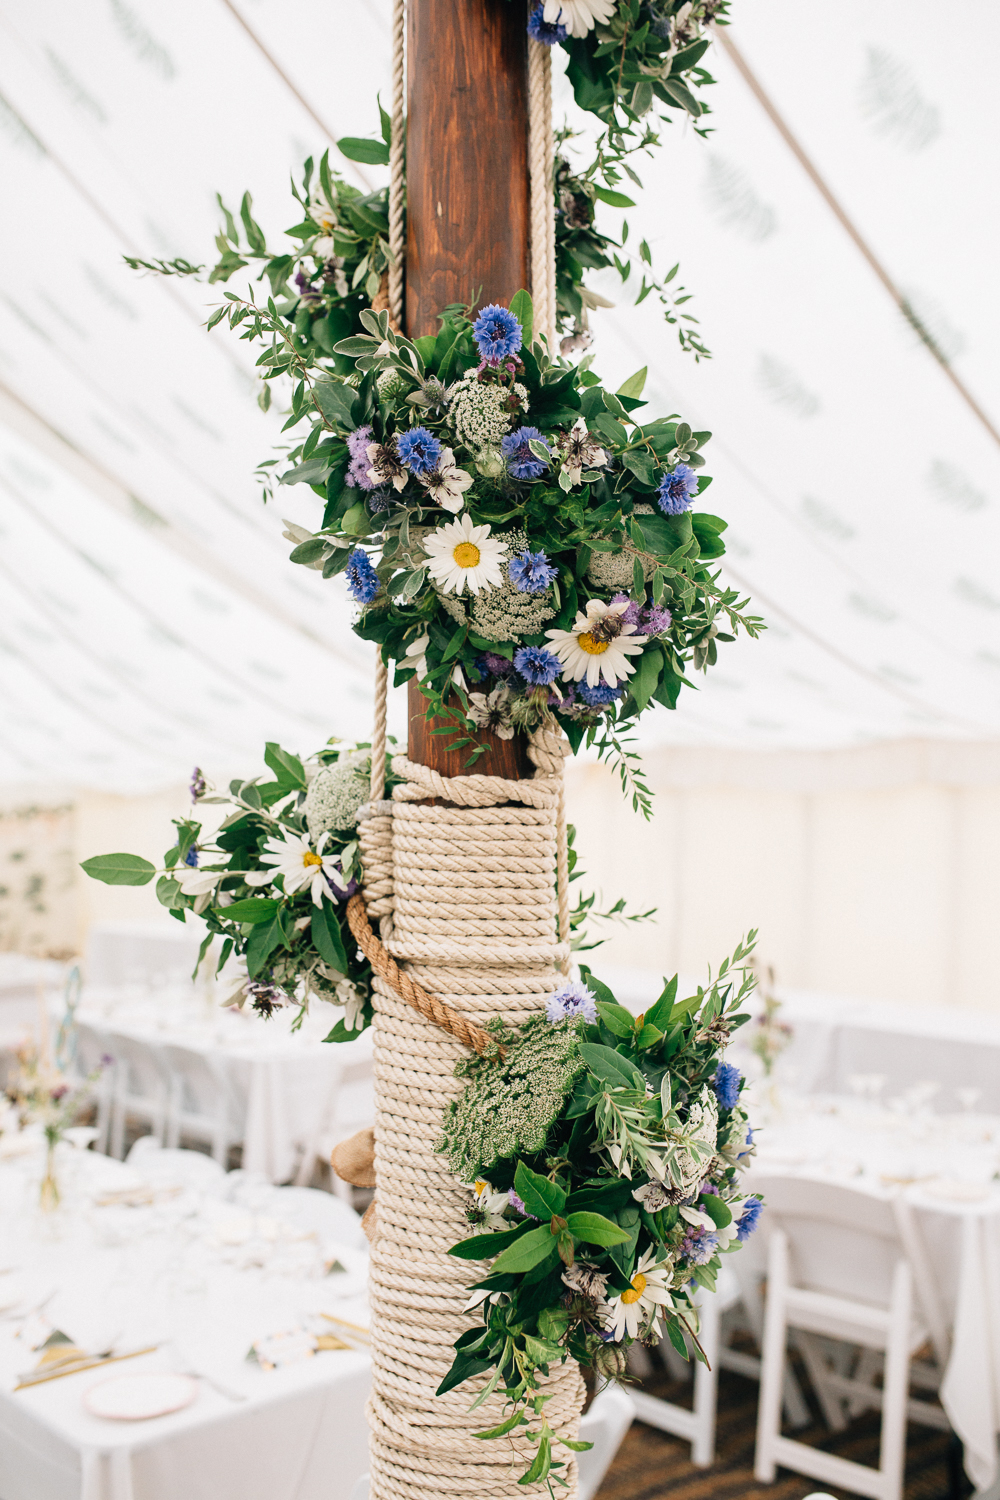 Wild Flower Wedding For A Rustic Marquee Reception At Brides Family